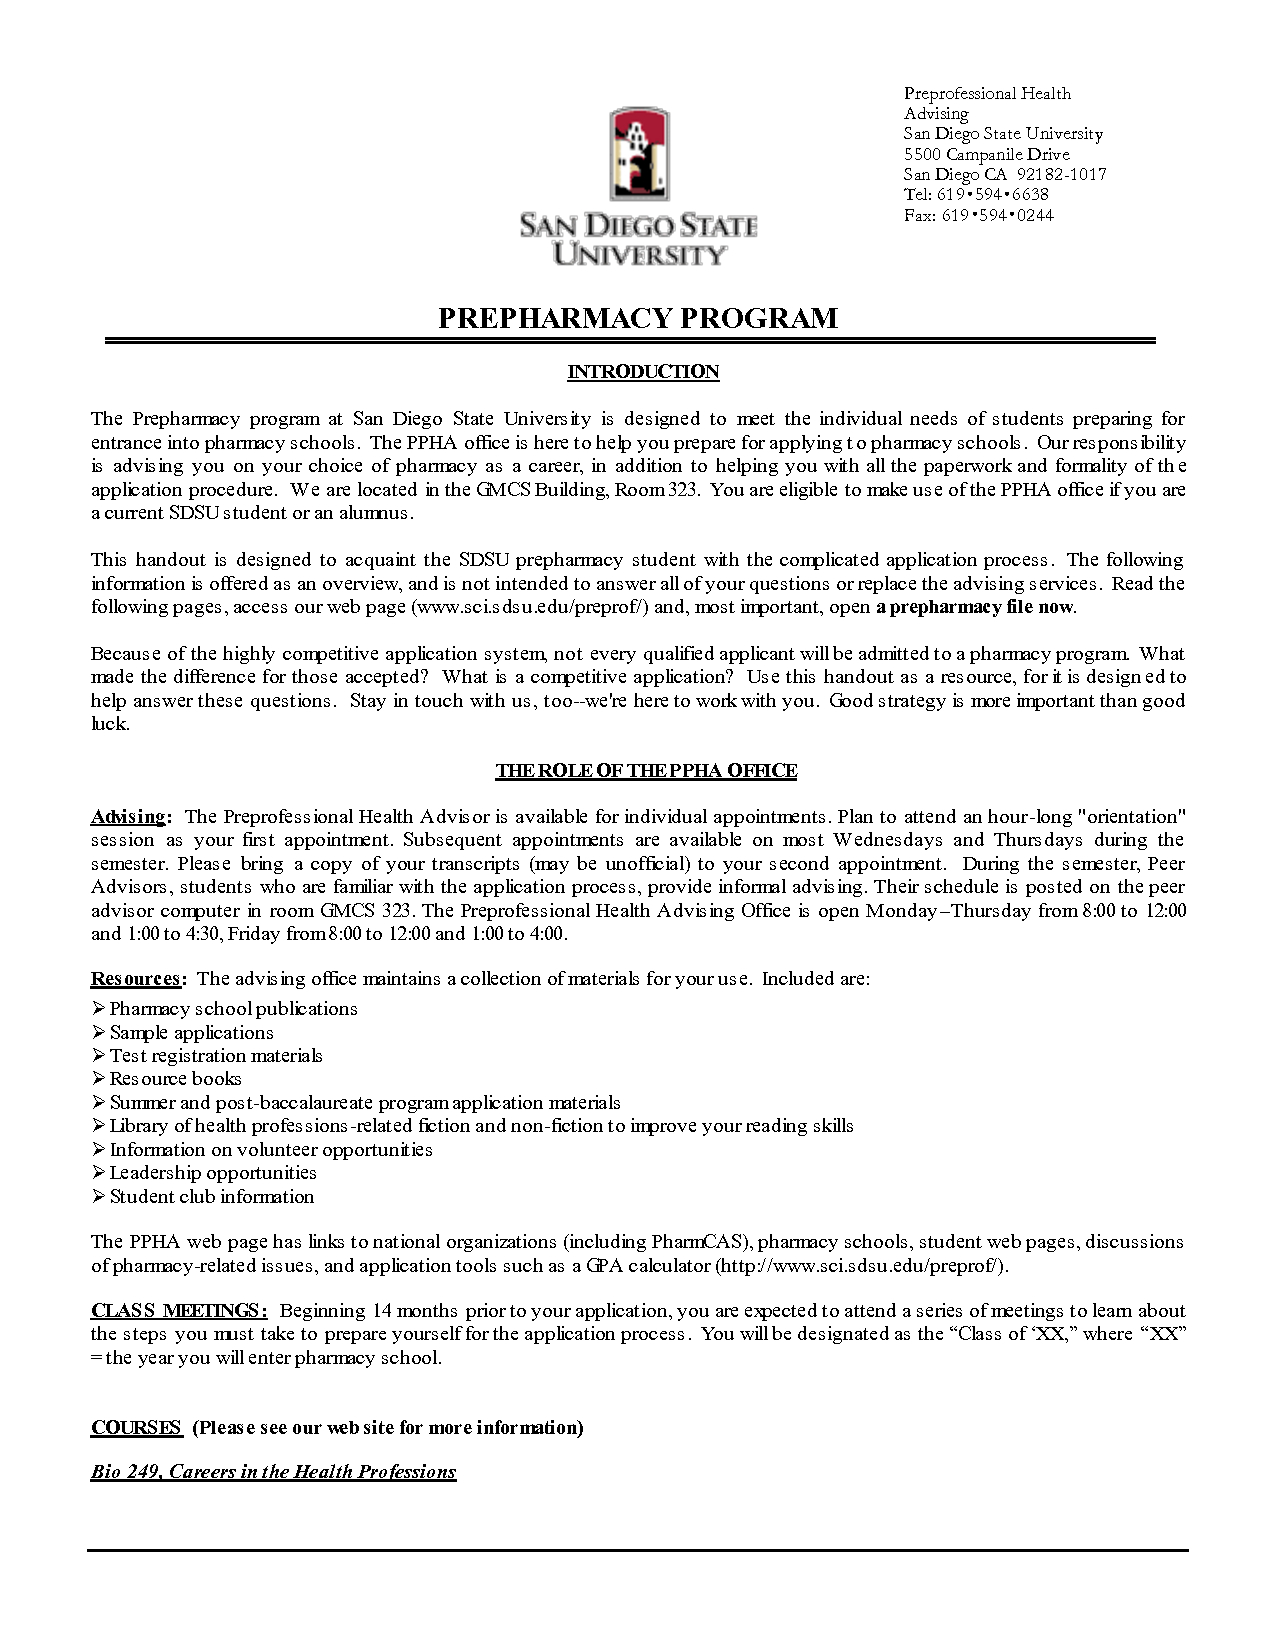 Real Estate Referral Letter Template - How to Write A Good Cover Letter for Resume Name Essay Examples